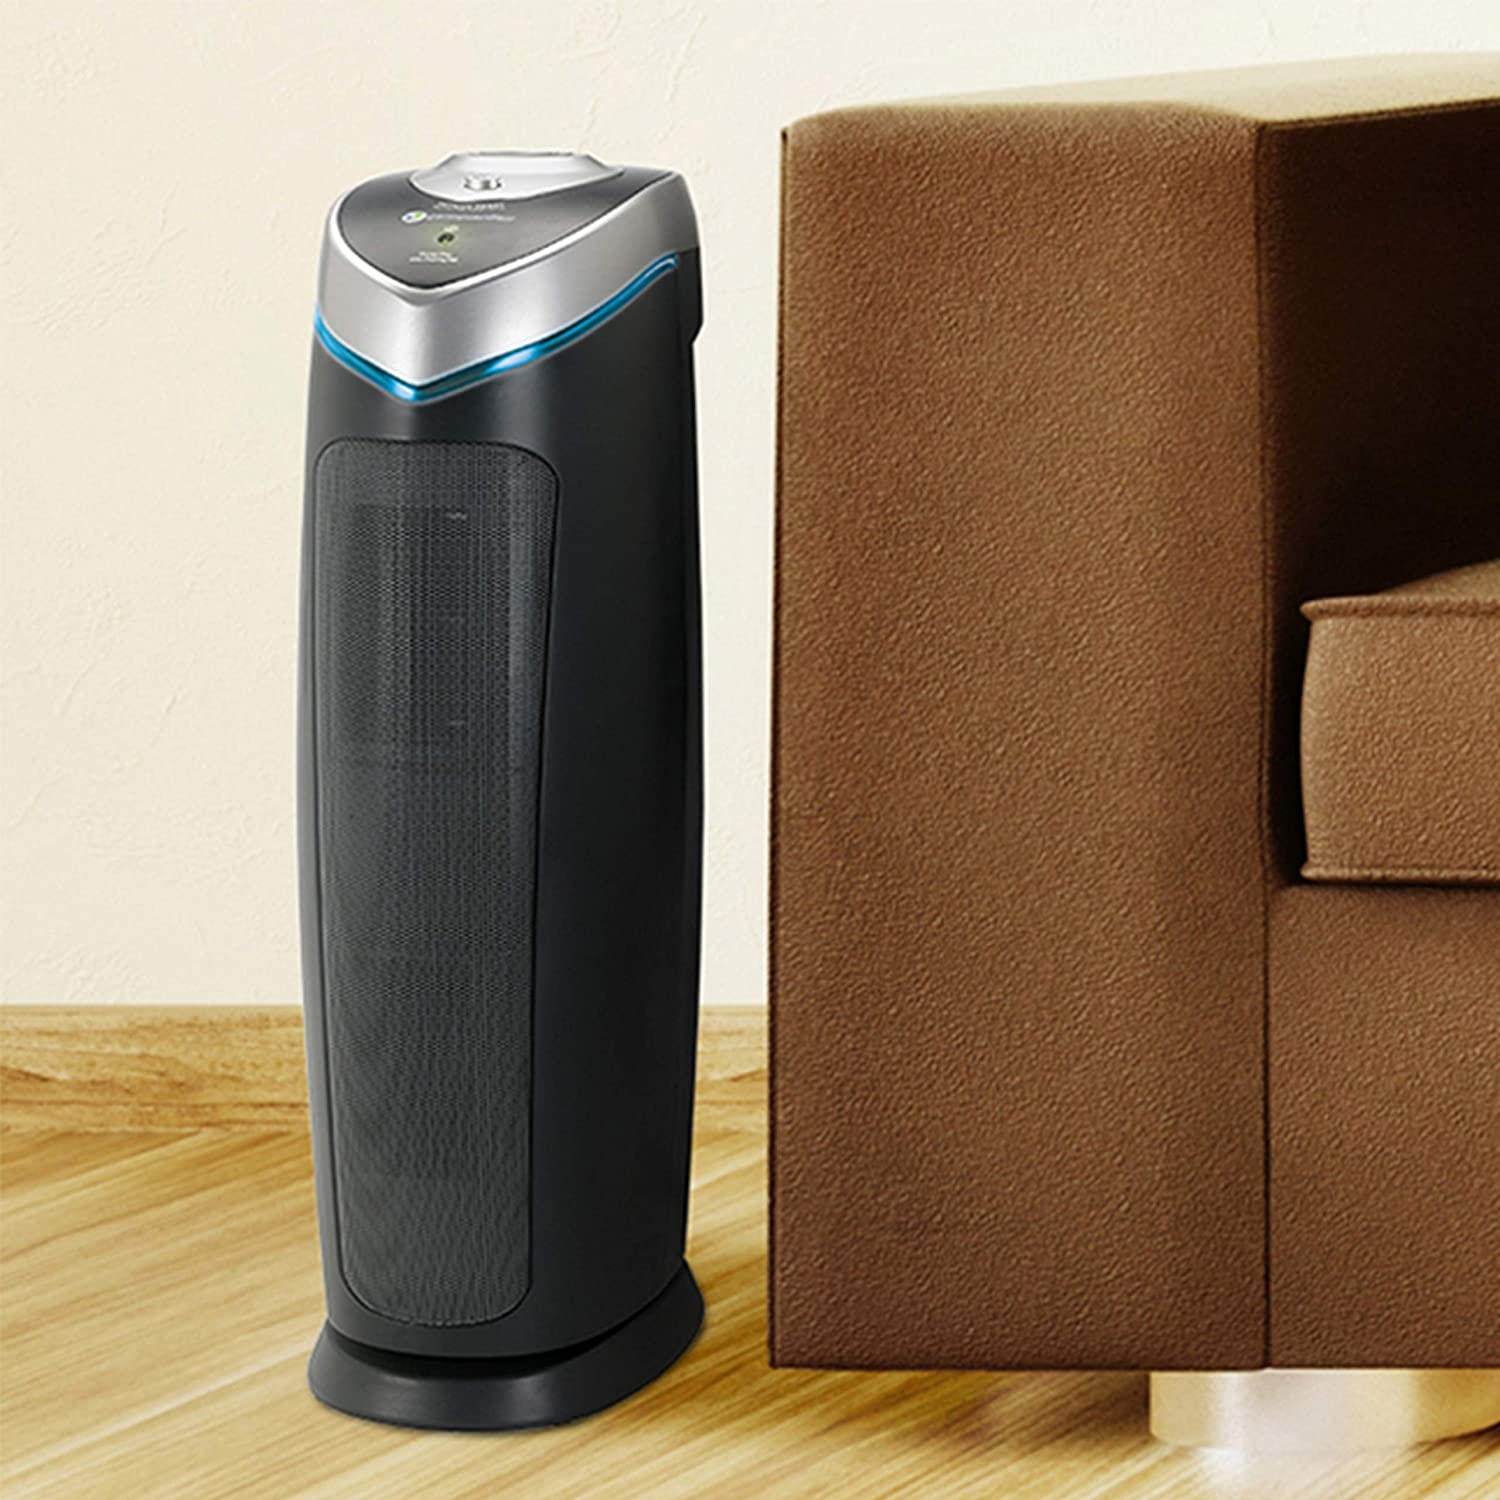 GermGuardian AC4825 3-in-1 Air Purifier